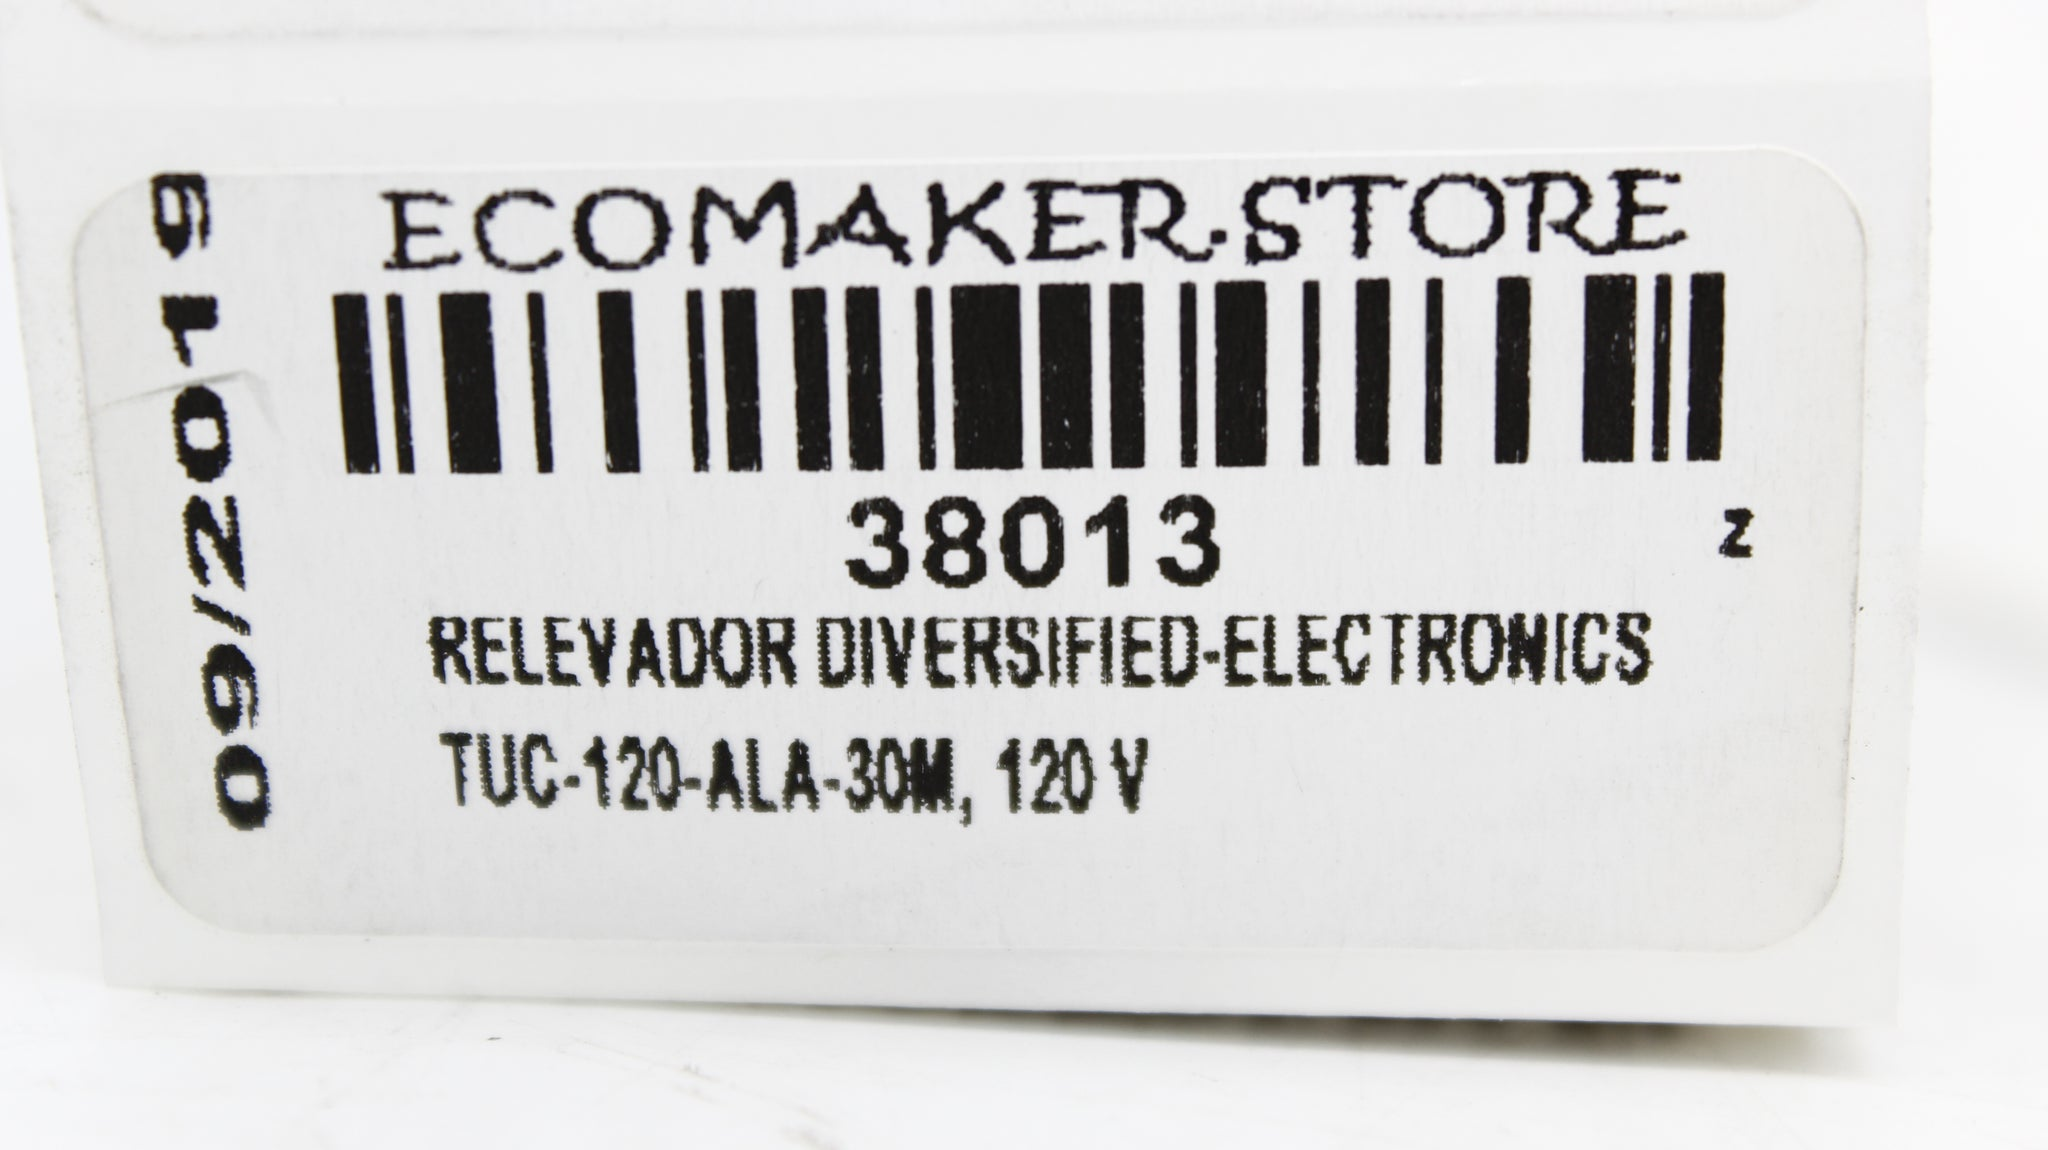 RELEVADOR DIVERSIFIED-ELECTRONICS TUC-120-ALA-30M